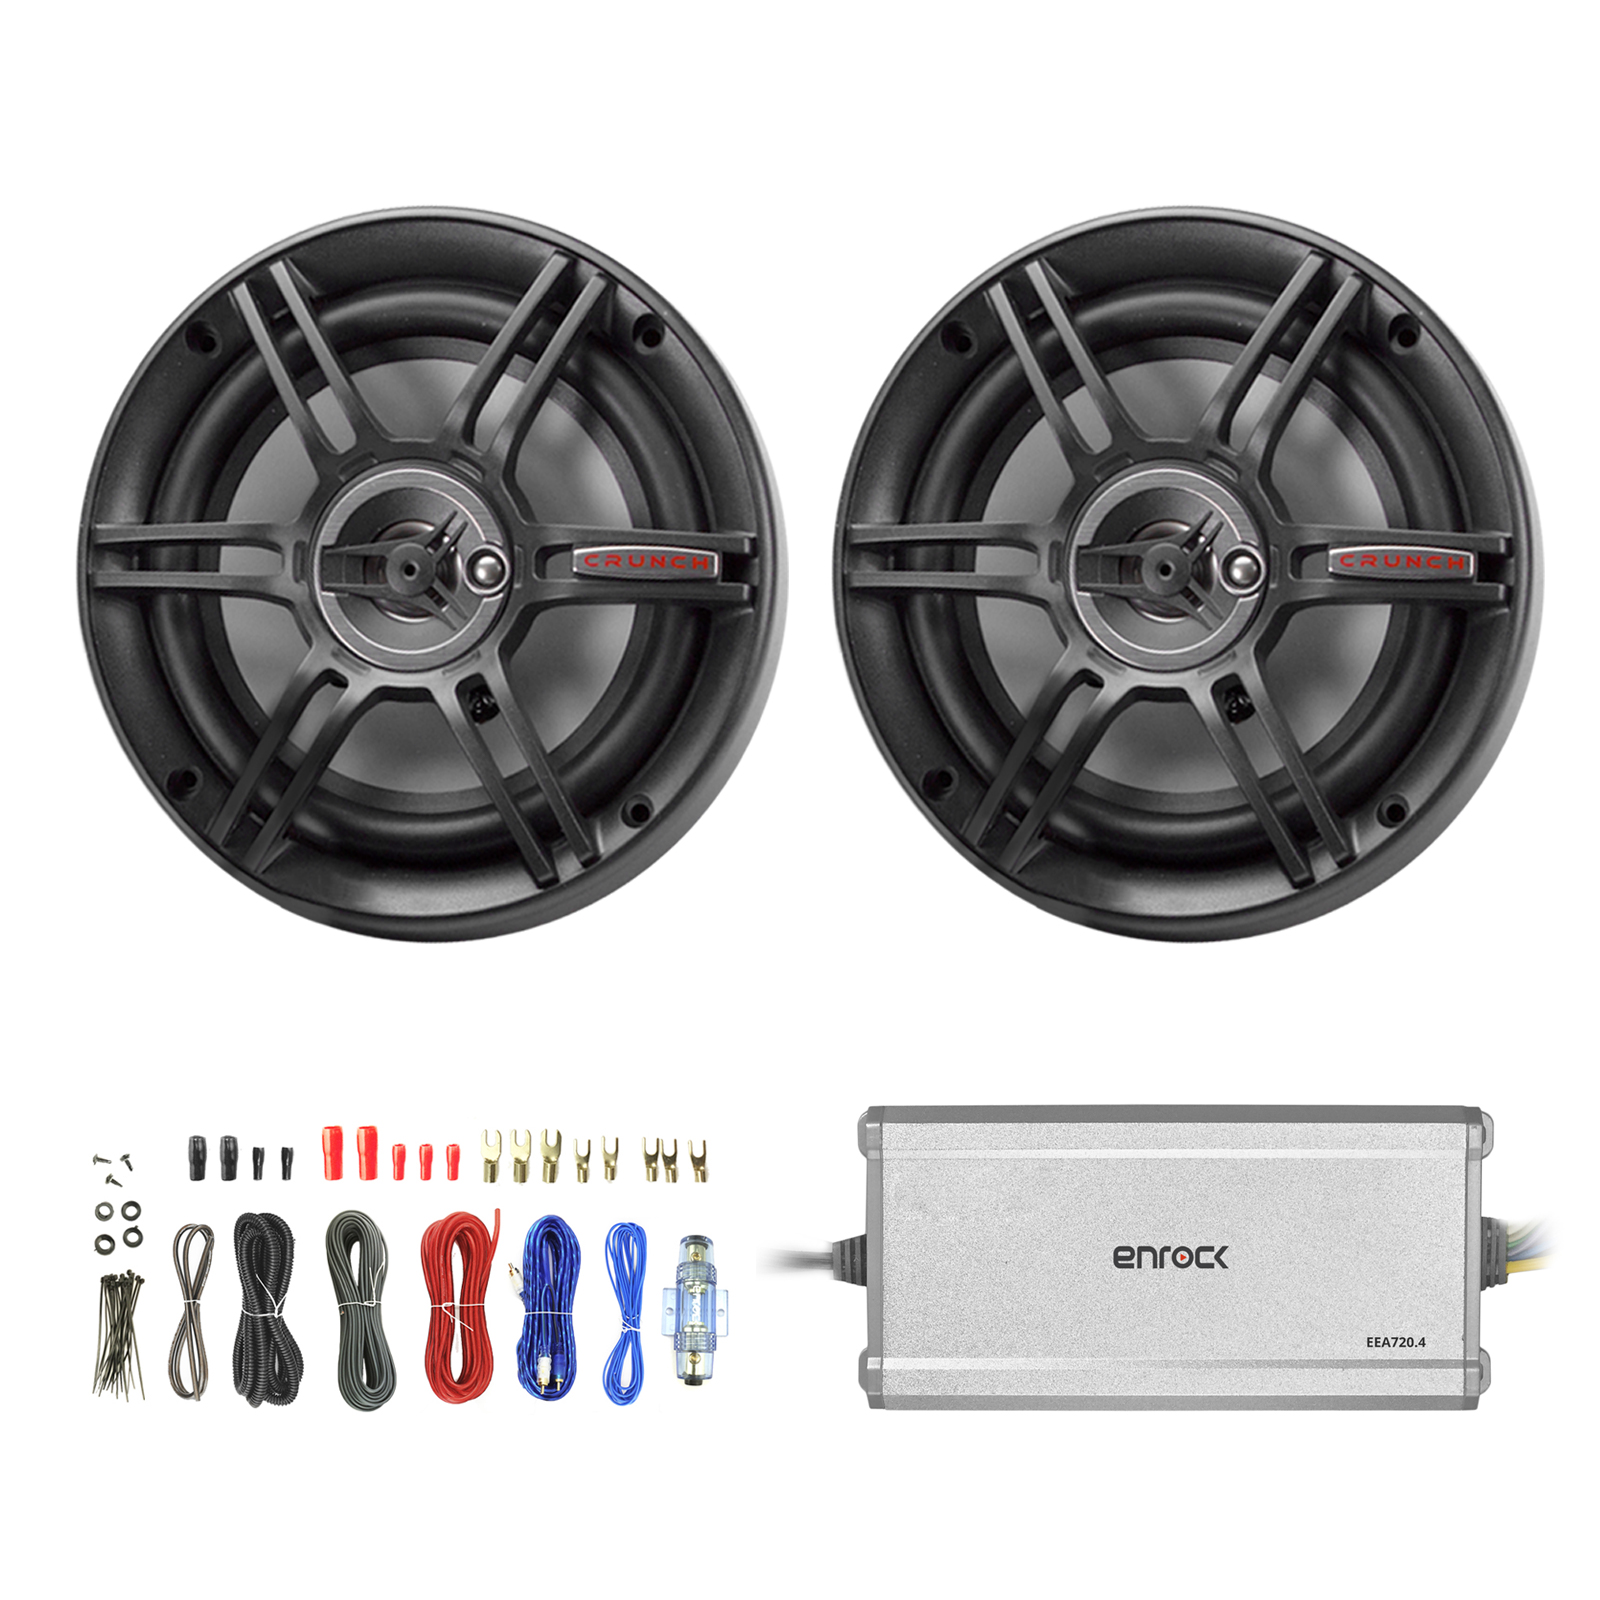 "2 x Crunch CS693 6x9"" 3-Way Car Speaker (Black) (2 pairs), Enrock Marine/Outdoor 4-Channel Marine Amplifier, Enrock Audio 18 AWG Gauge 50 Feet Speaker Wire Cable"